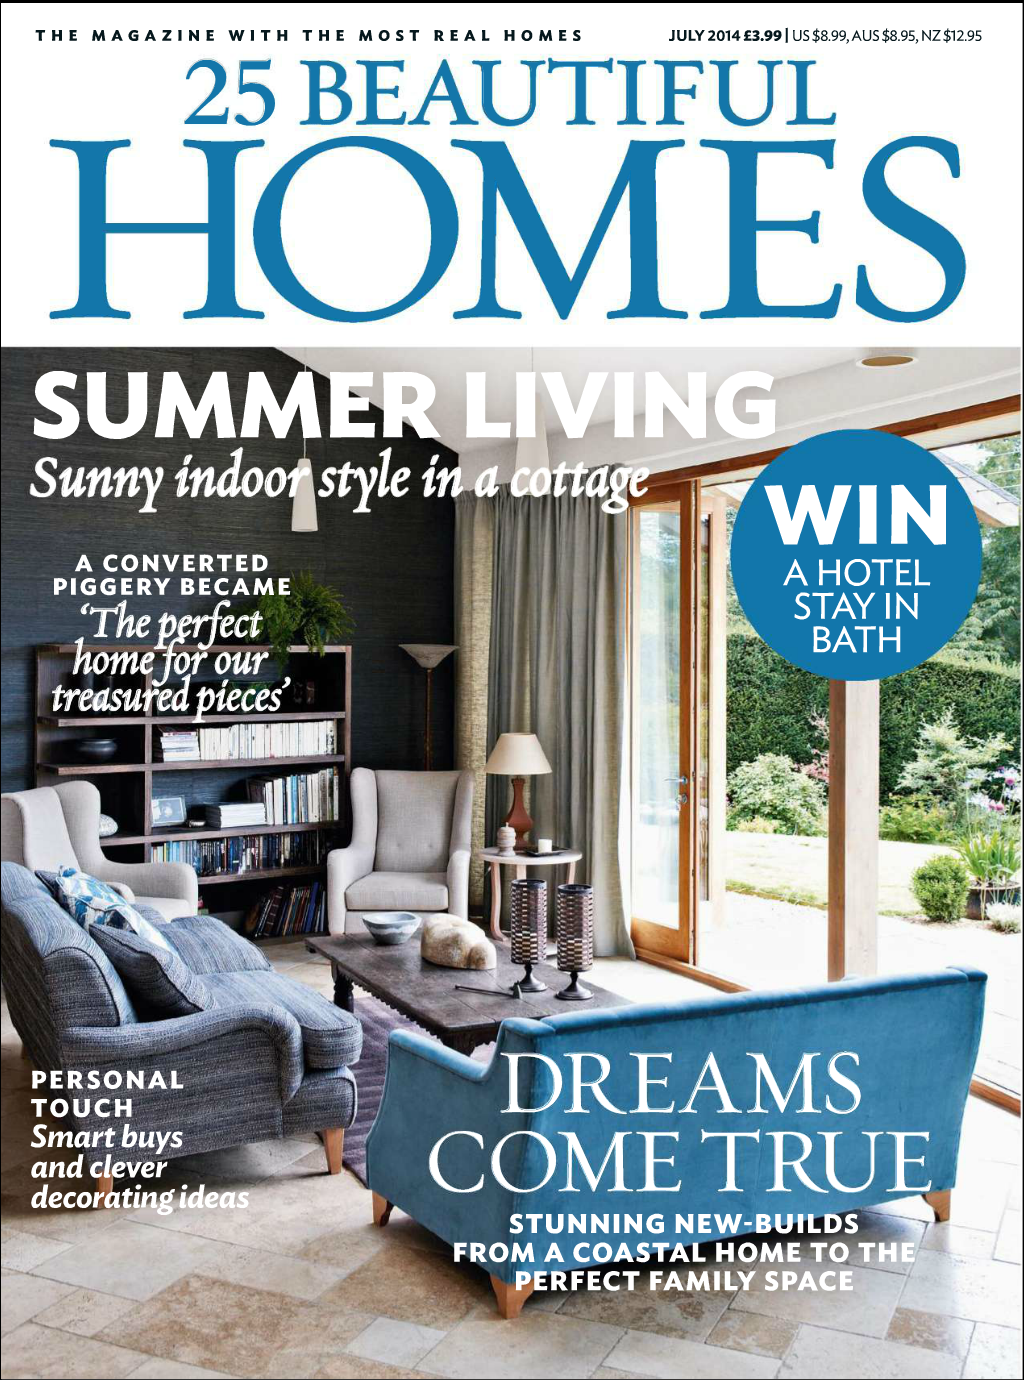 In the Press – 25 Beautiful Homes feature our interior design.